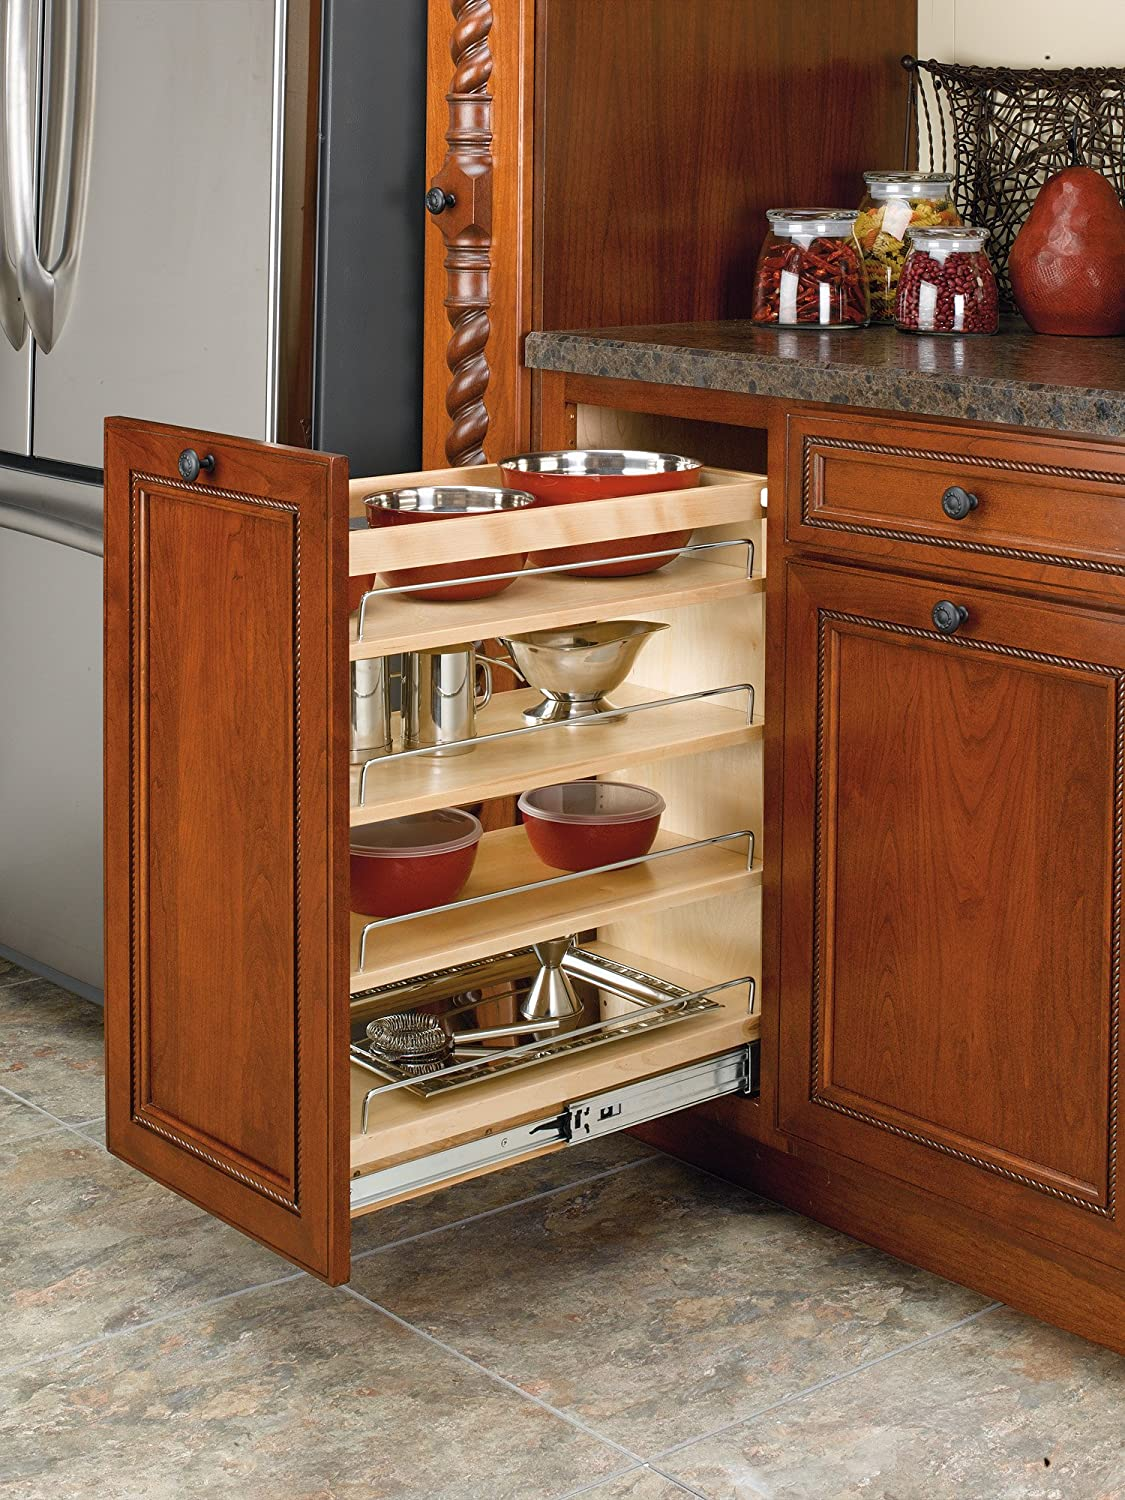 Kitchen Base Cabinet Pull Outs Part - 40: Amazon.com: Rev-A-Shelf - 448-BC-11C - 11 In. Pull-Out Wood Base Cabinet  Organizer: Home U0026 Kitchen